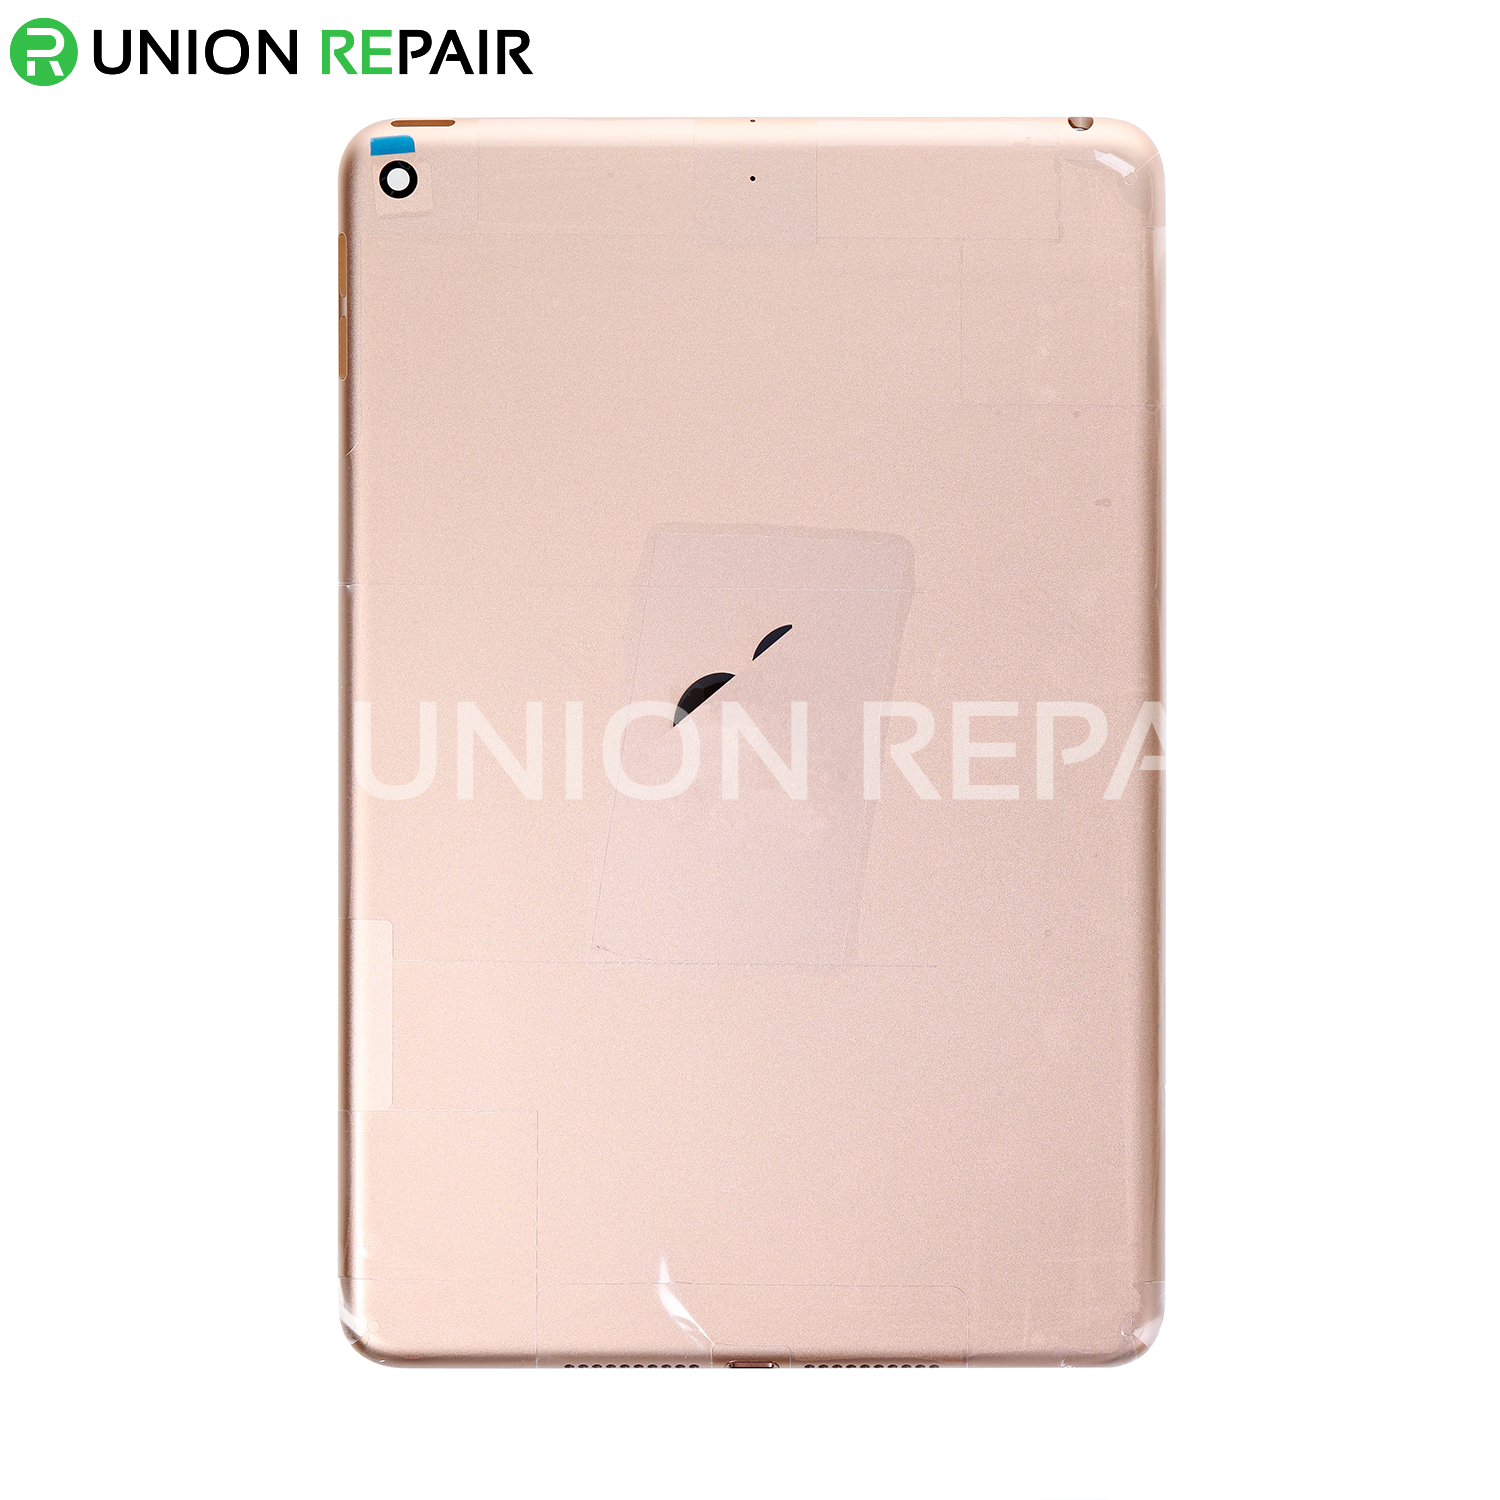 Replacement for iPad Mini 5 WiFi Back Cover - Gold